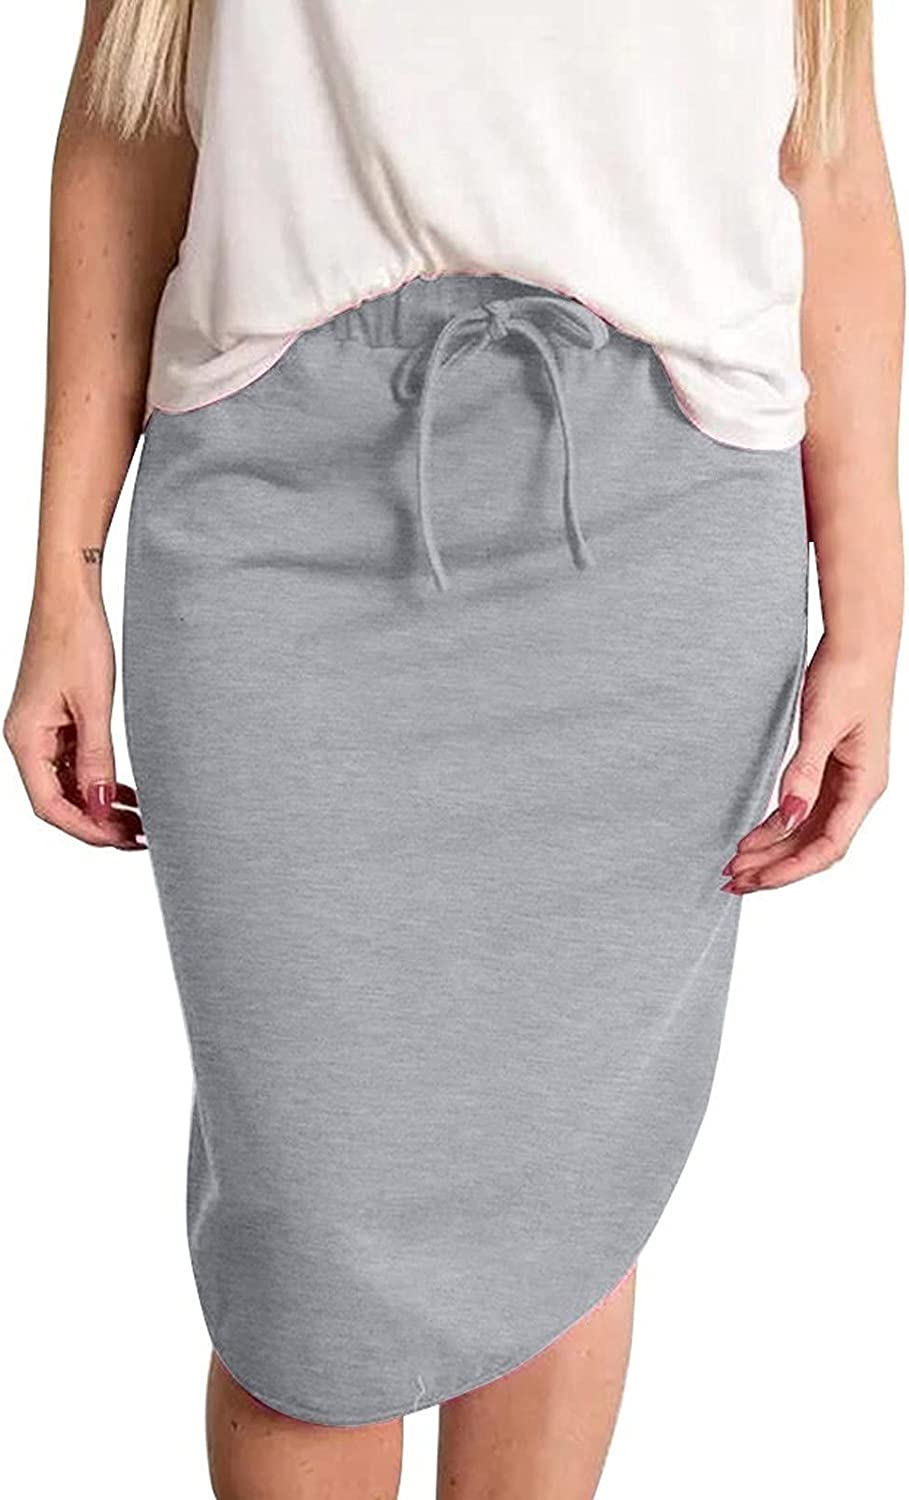 NIUQI Women'S Bag Hip Midi Long Skirt, Casual And Novel Skirts For Women, Summer Solid Color Striped Skirts